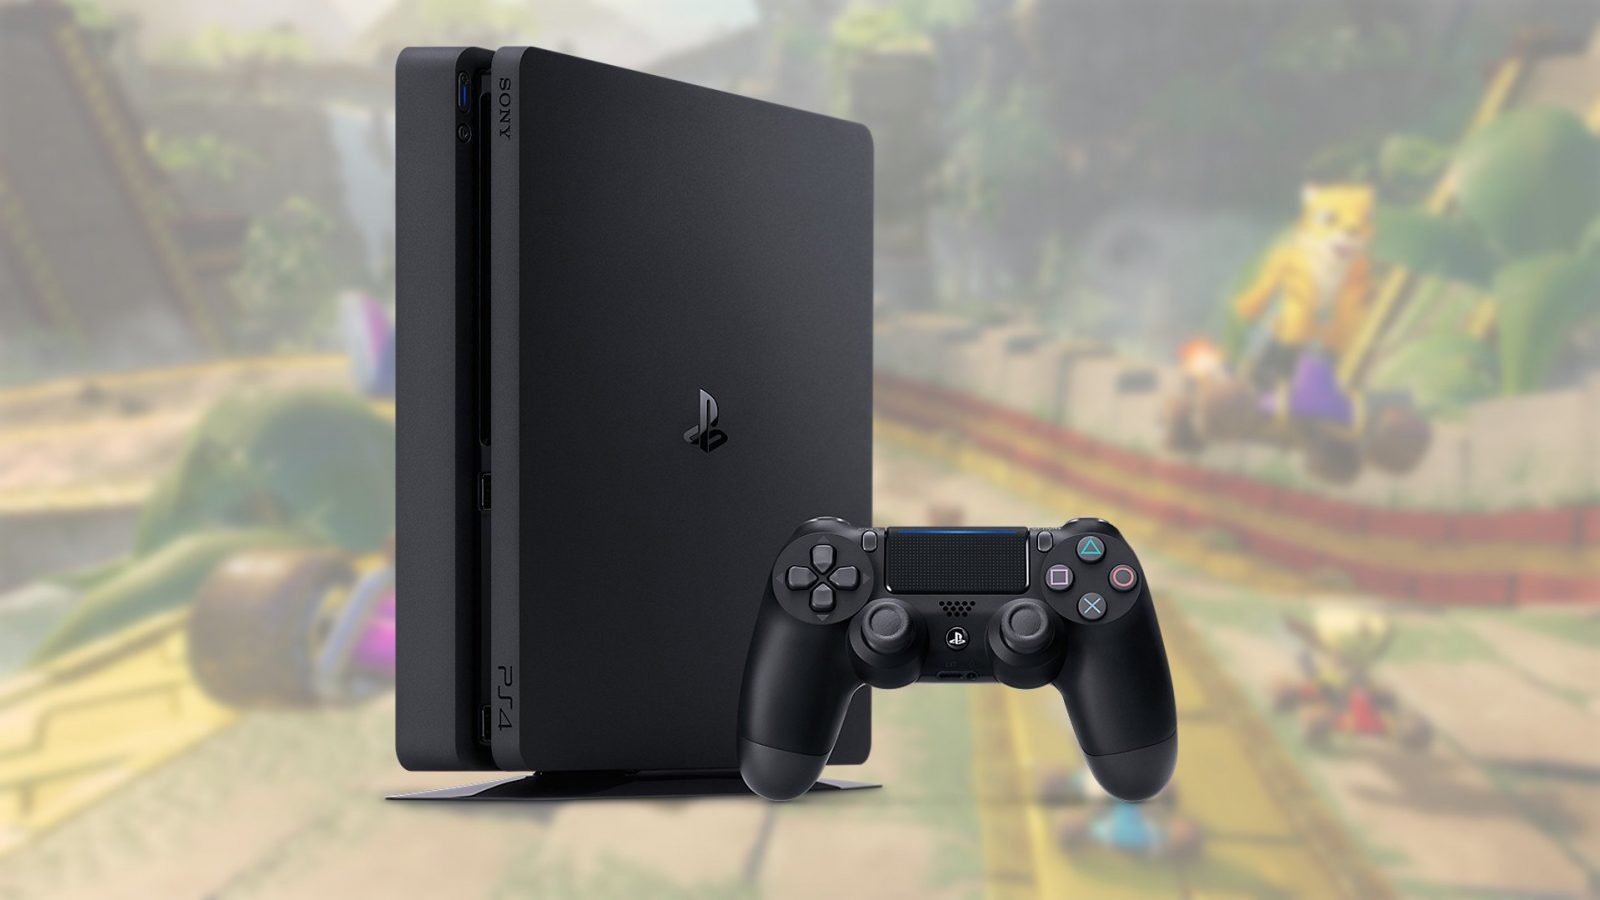 PlayStation 4 Sales Cross 100 Million Units 5½ Years After Launch